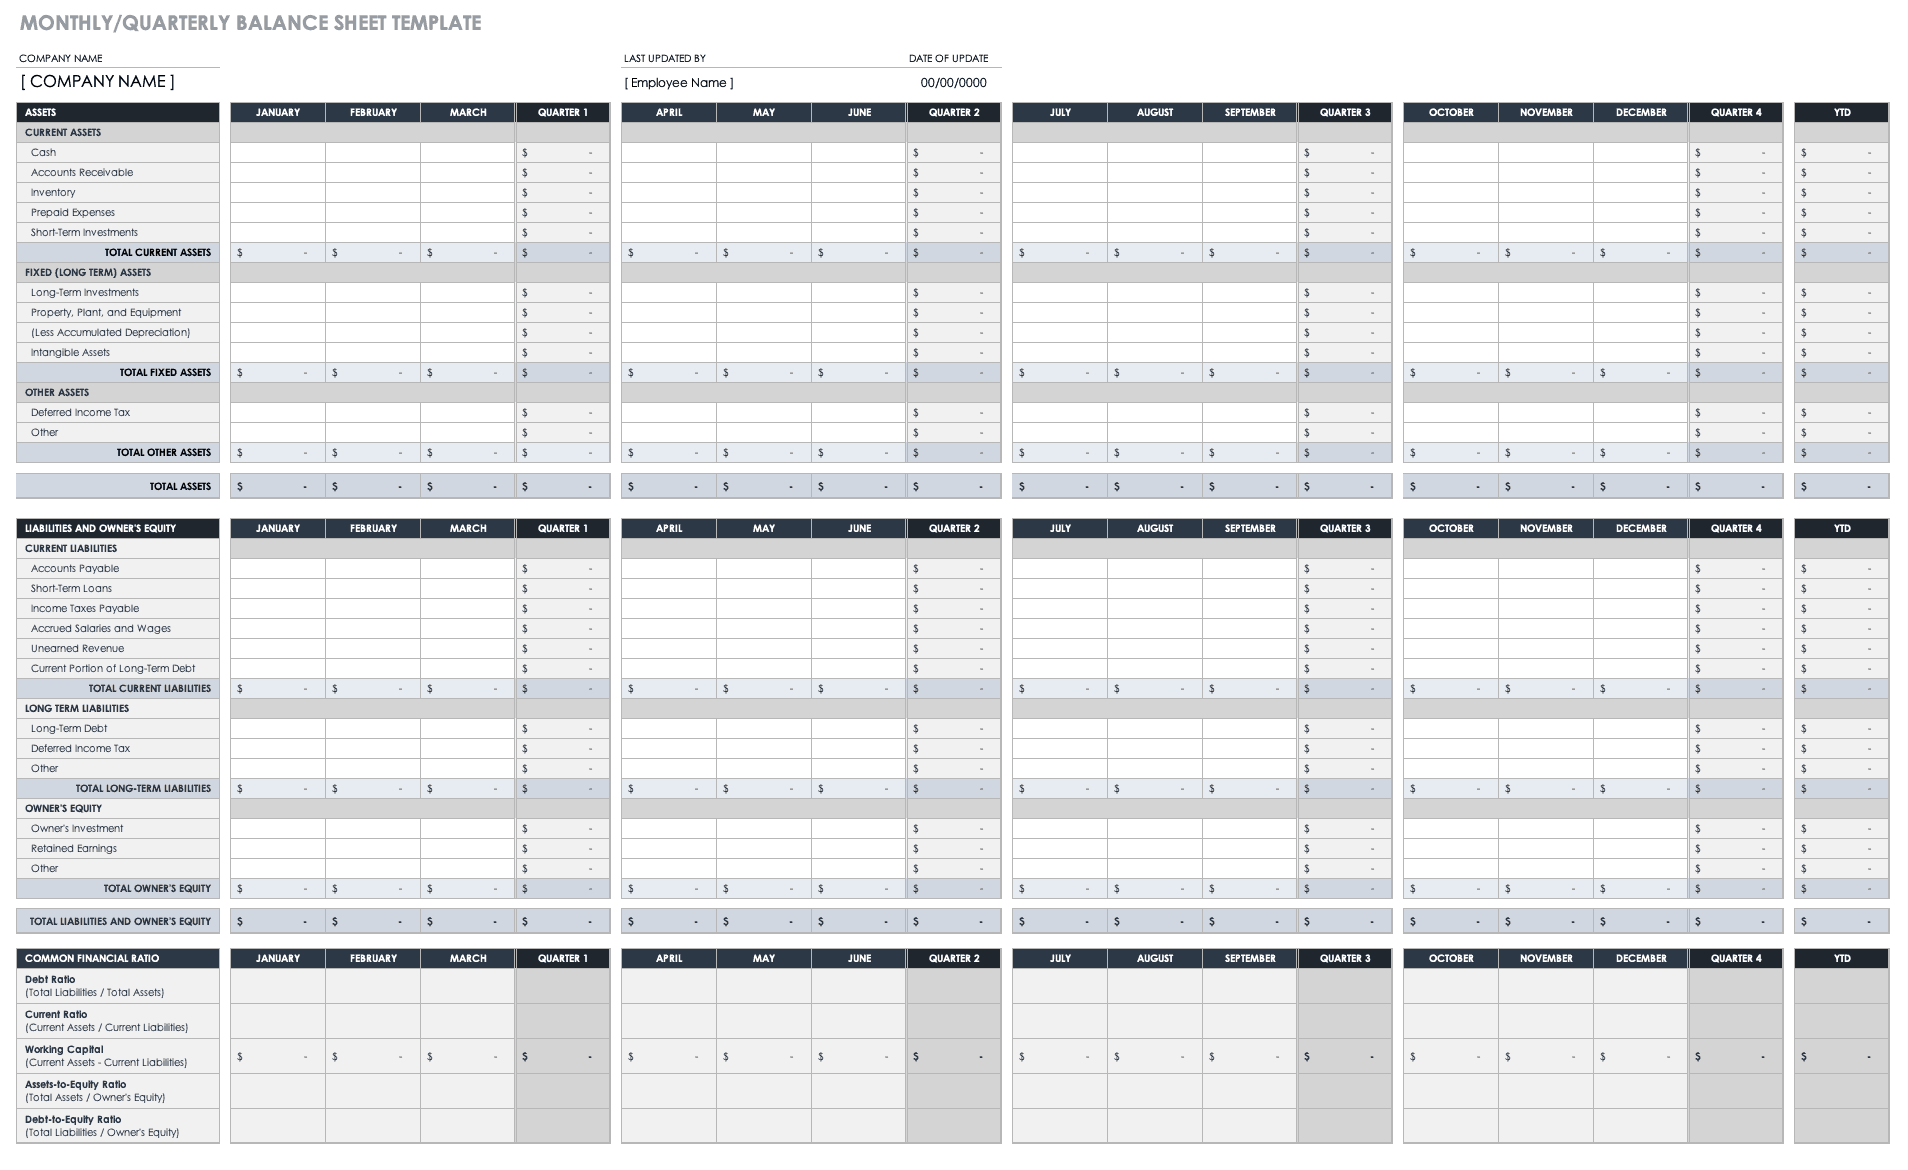 Monthly Quarterly Balance Sheet Template